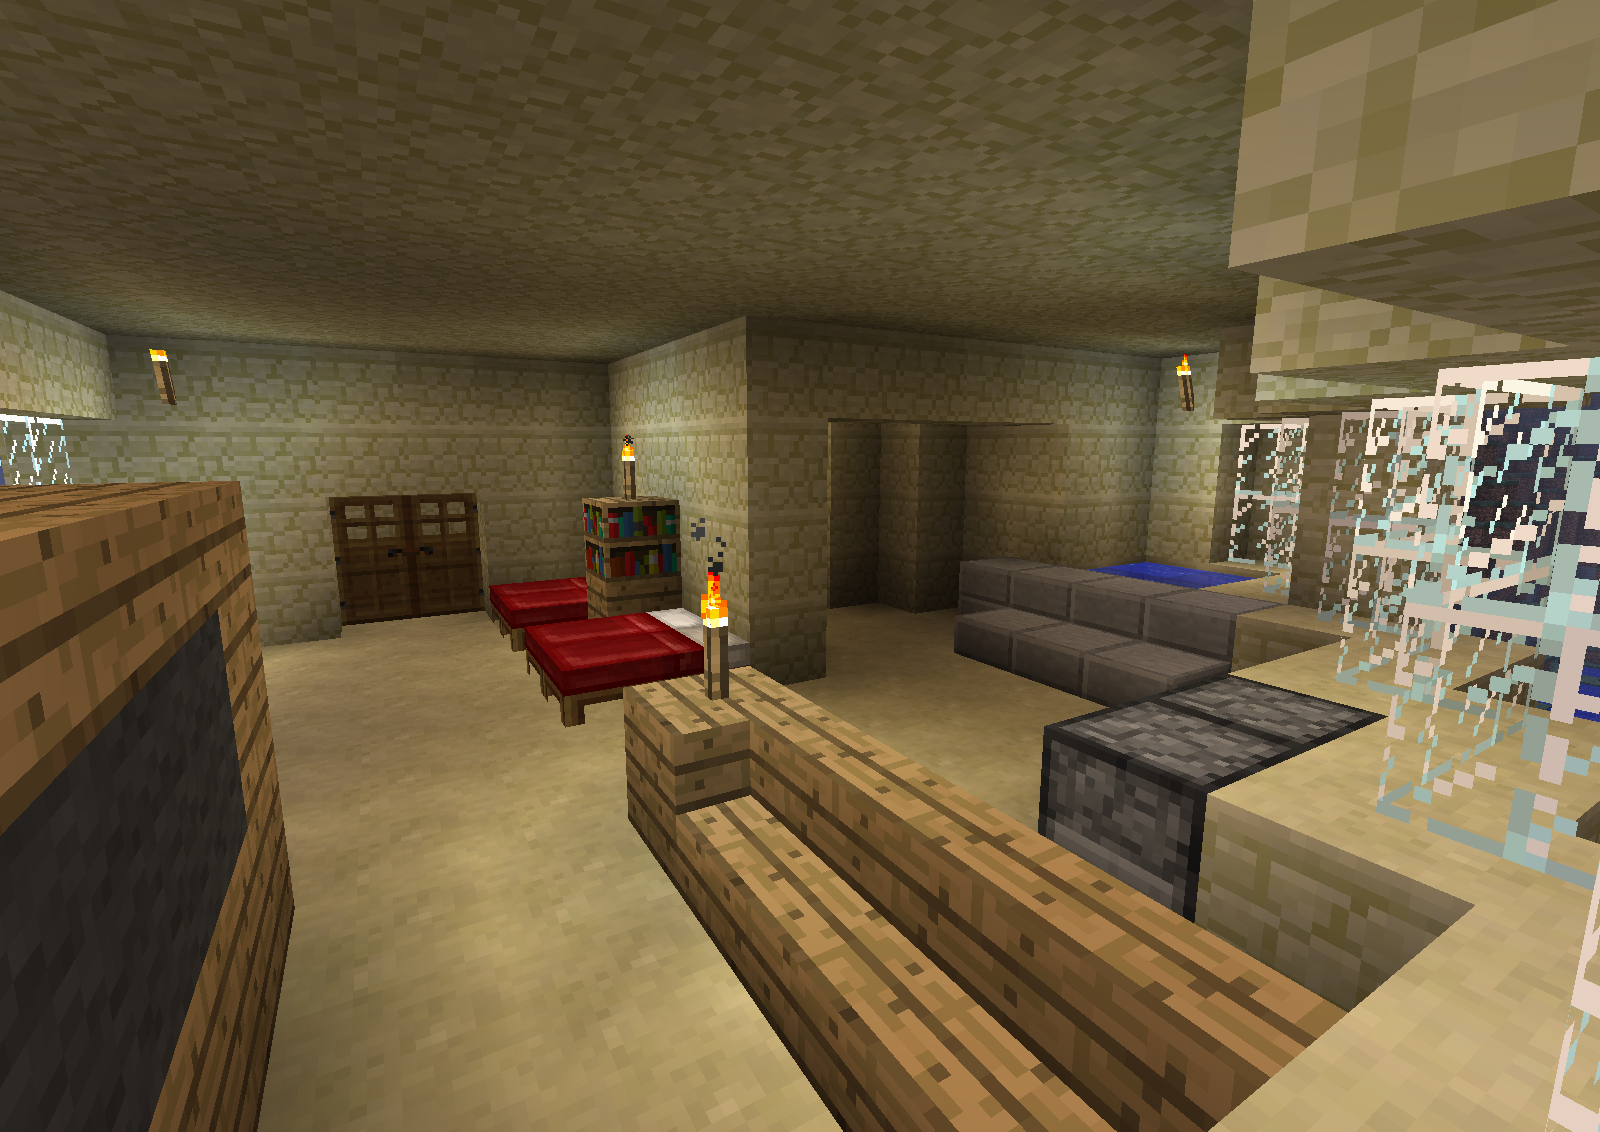 1000 images about minecraft on pinterest minecraft for Minecraft lounge ideas